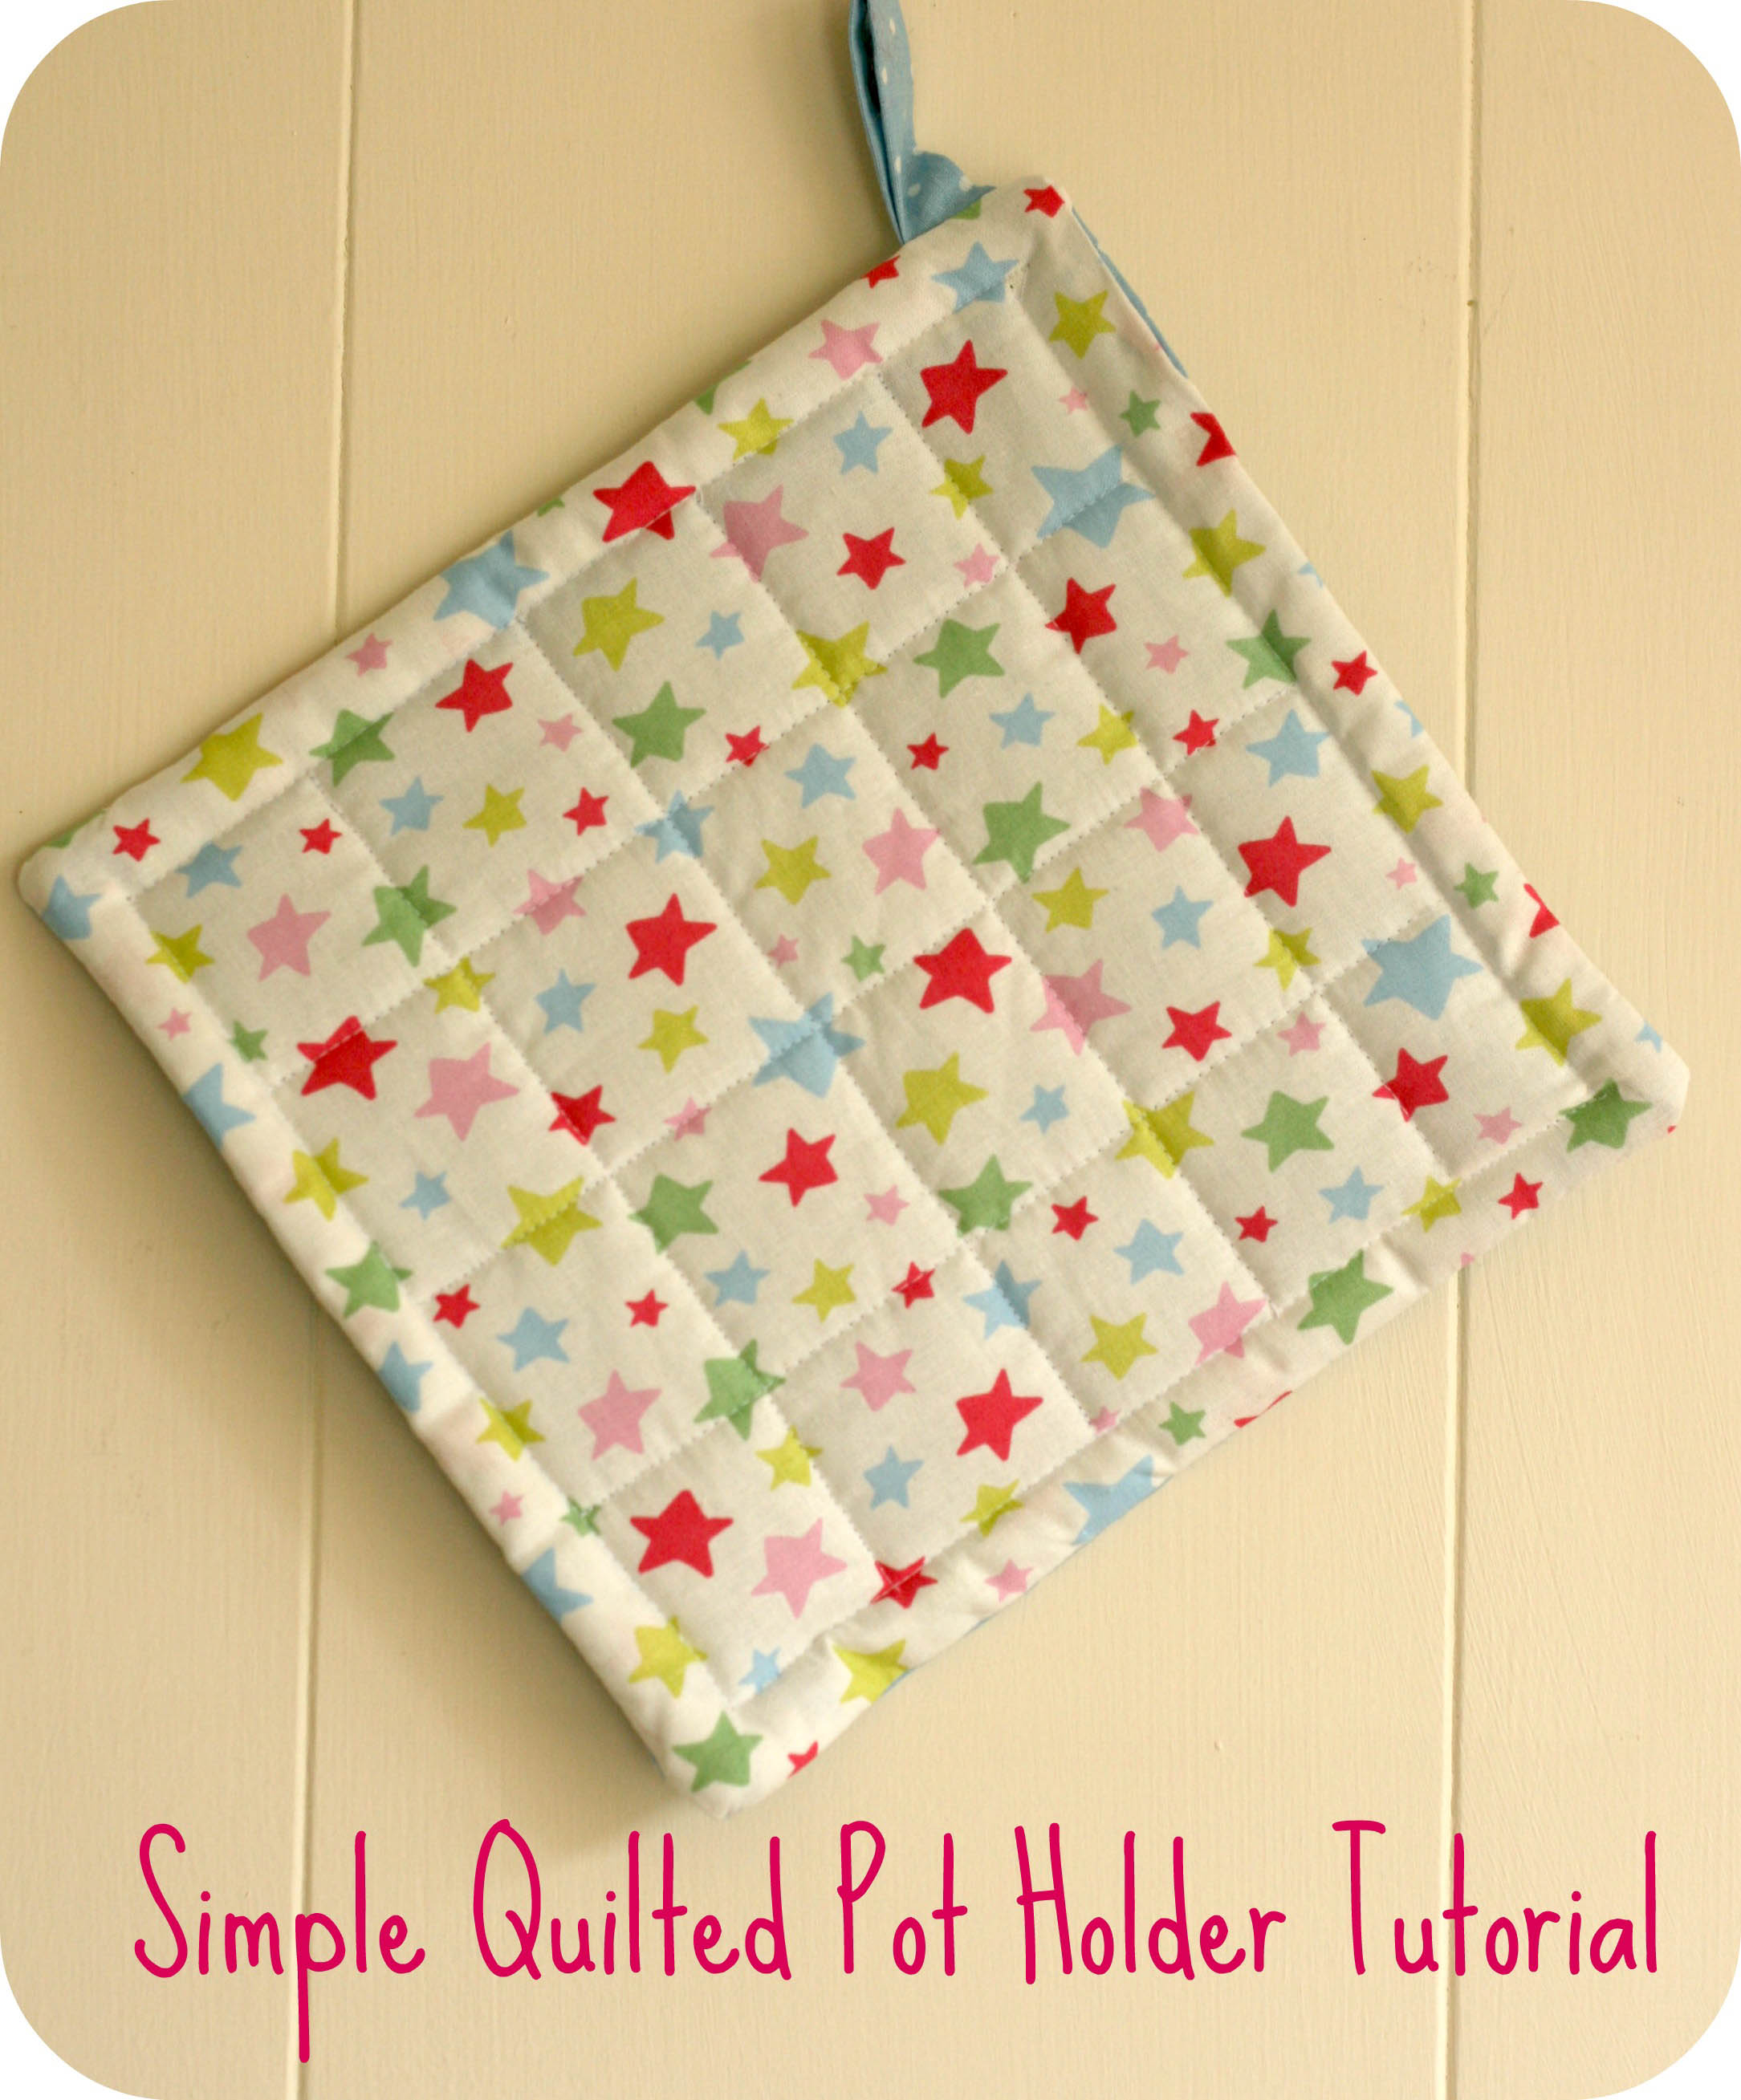 Homemade Pot Holders: Simple Quilted Pot Holder Tutorial